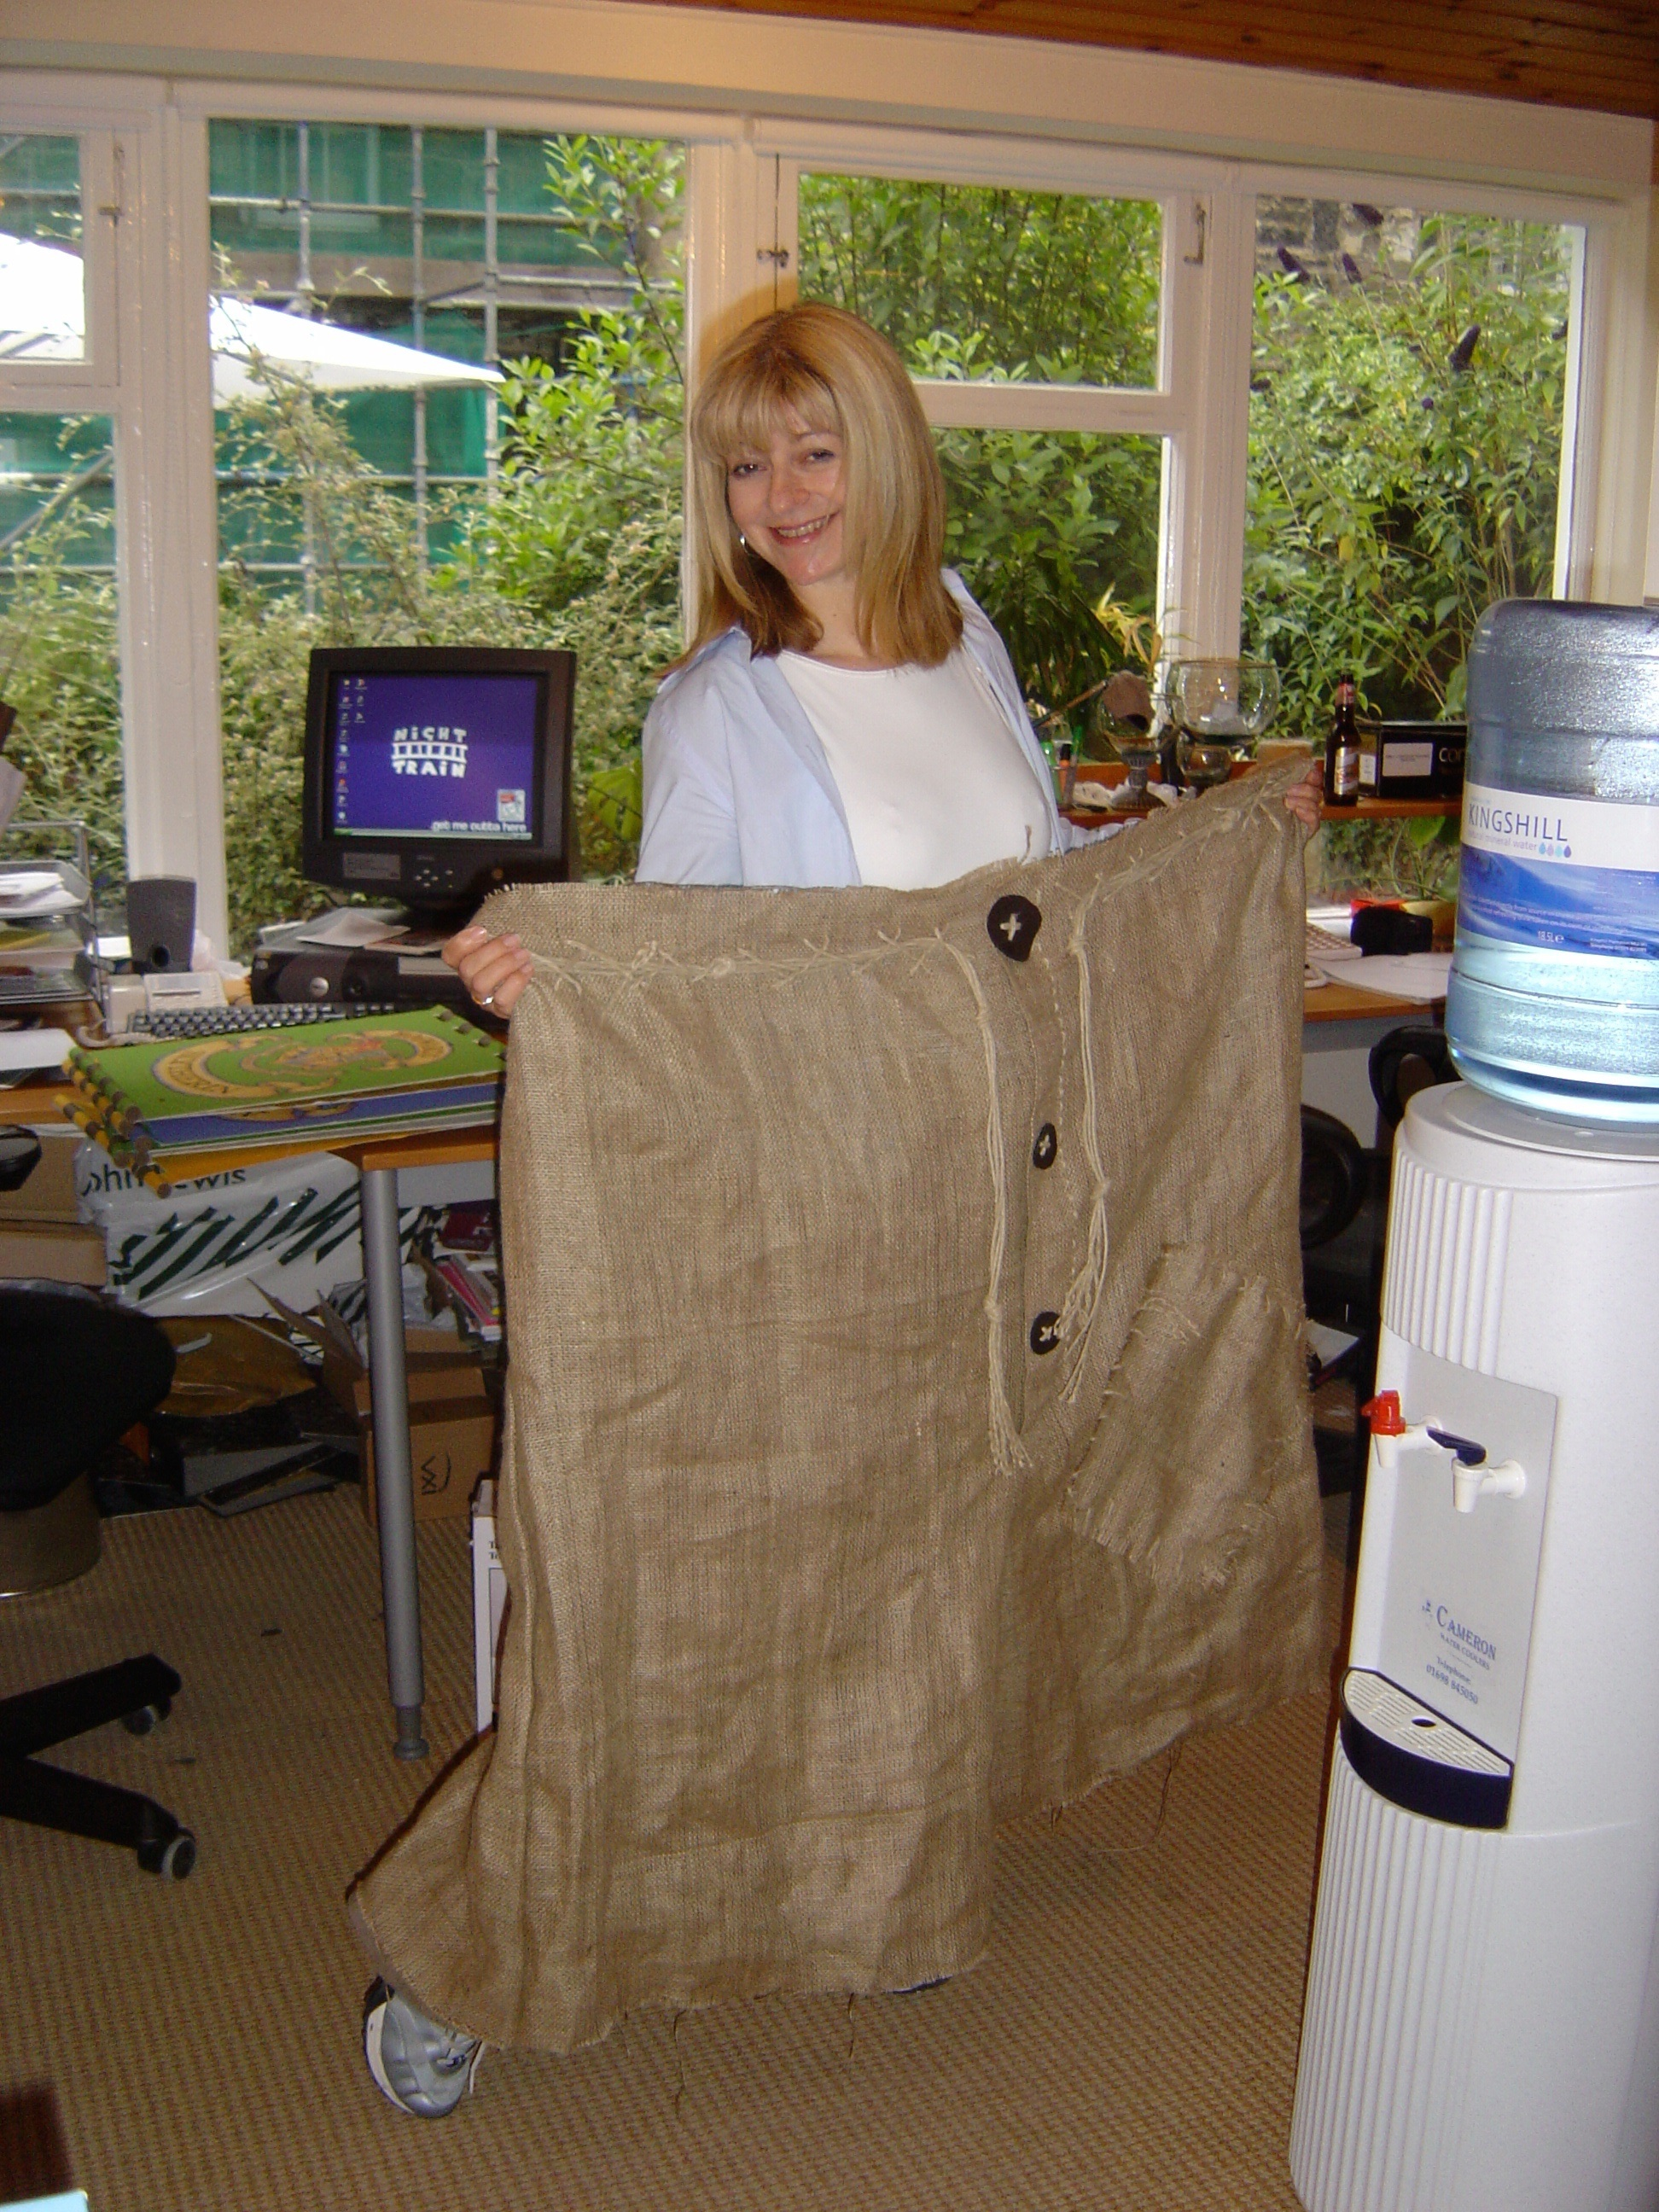 CC01 - sally in hagrid pants.jpg